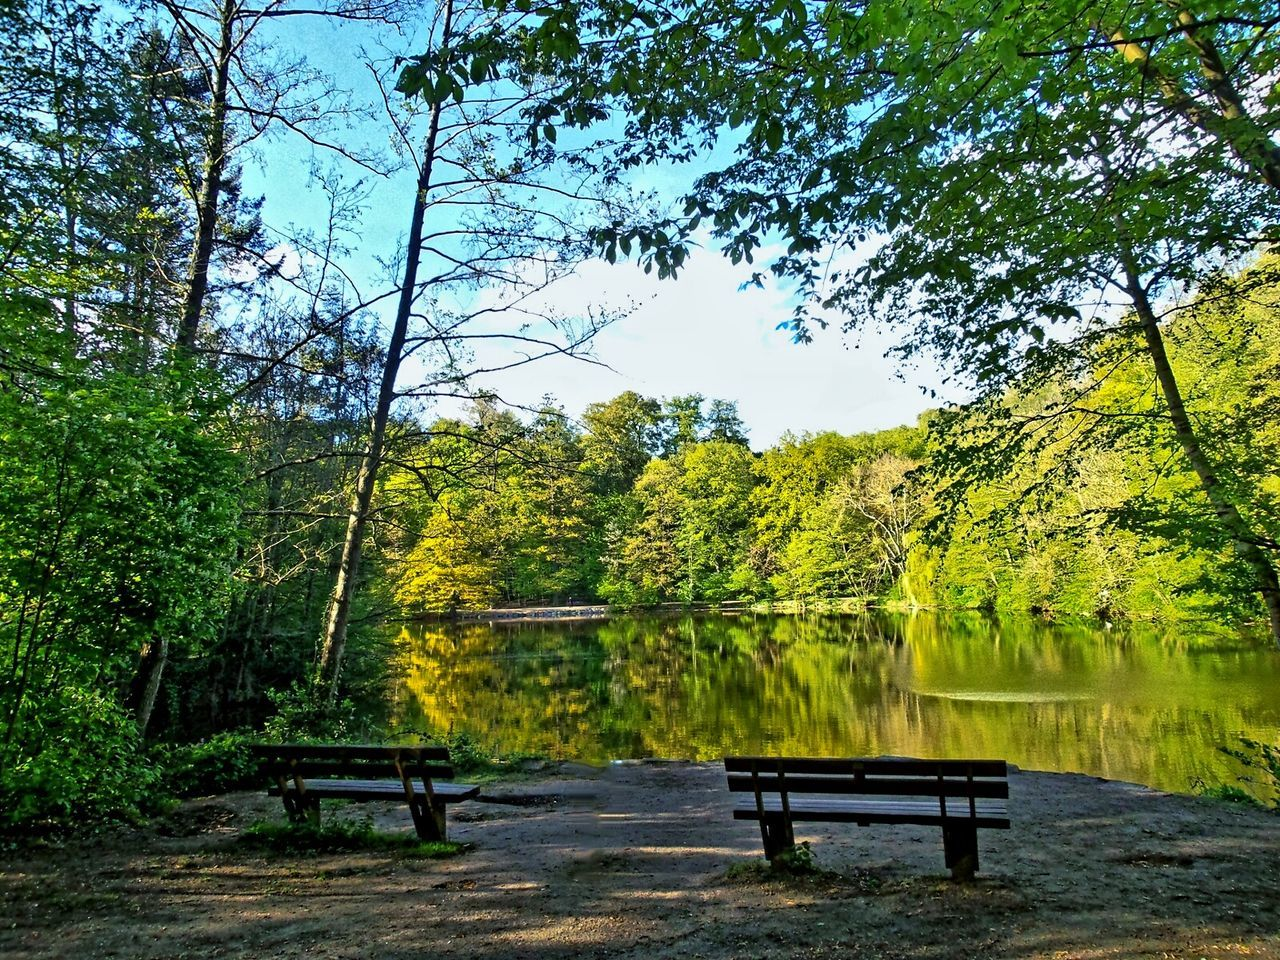 Calm Atmosphere Perfect View Lakeshore Forest Lake Empty Benches No People Hardcore Spring Spring Colors Blooming Trees Against Blue Blue Sky Water Reflections All Shades Of Green Landscape Waterscape All Kinds Of Trees City Forest Frankfurt Am Main Germany🇩🇪